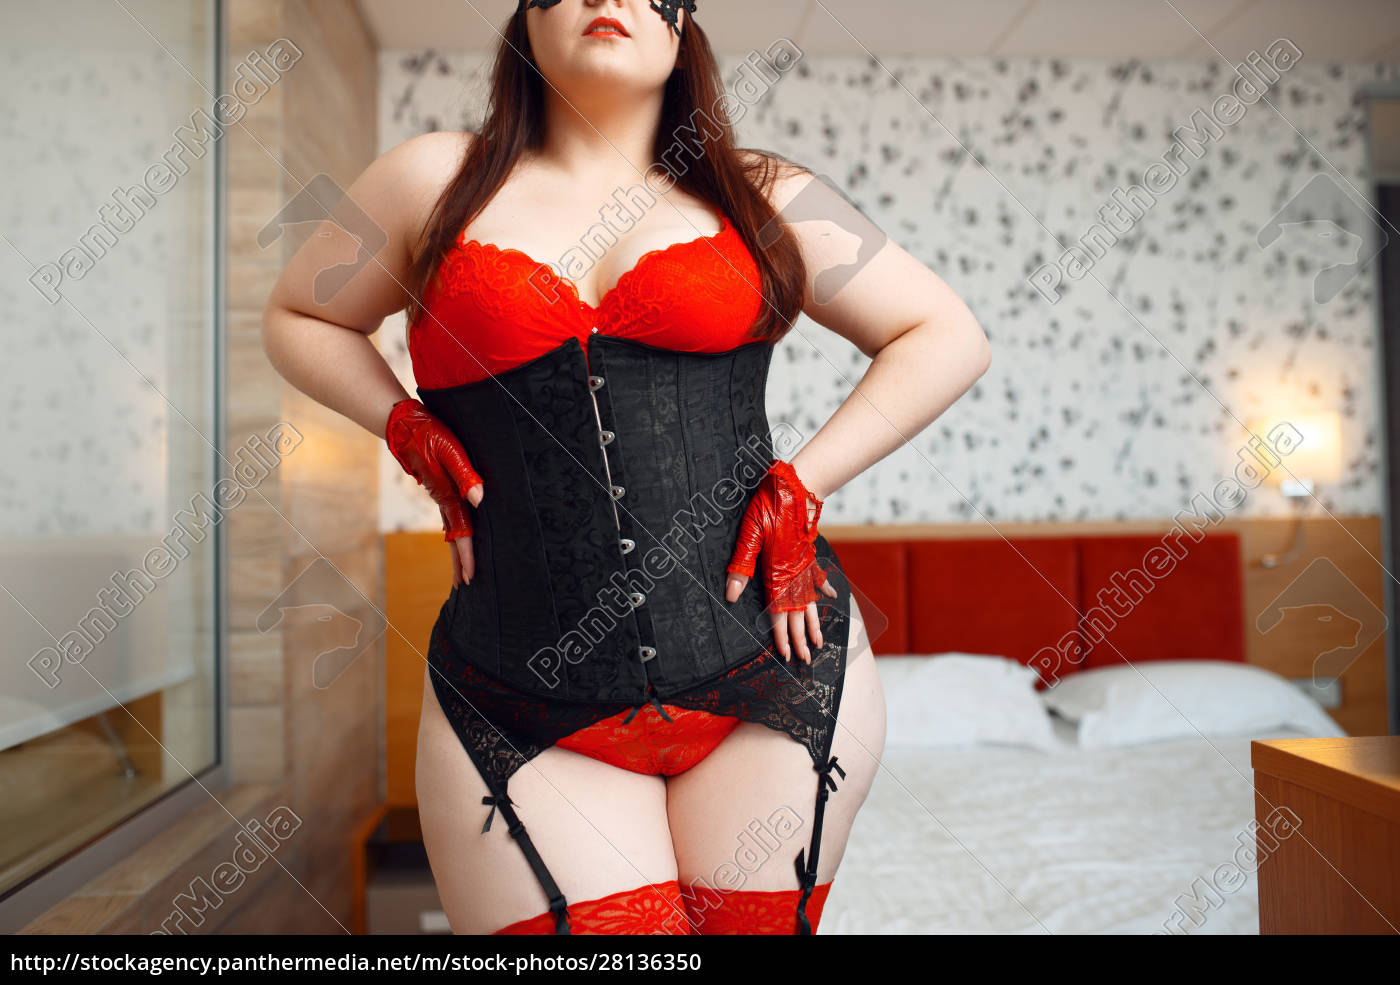 fat, woman, in, black, and, red - 28136350